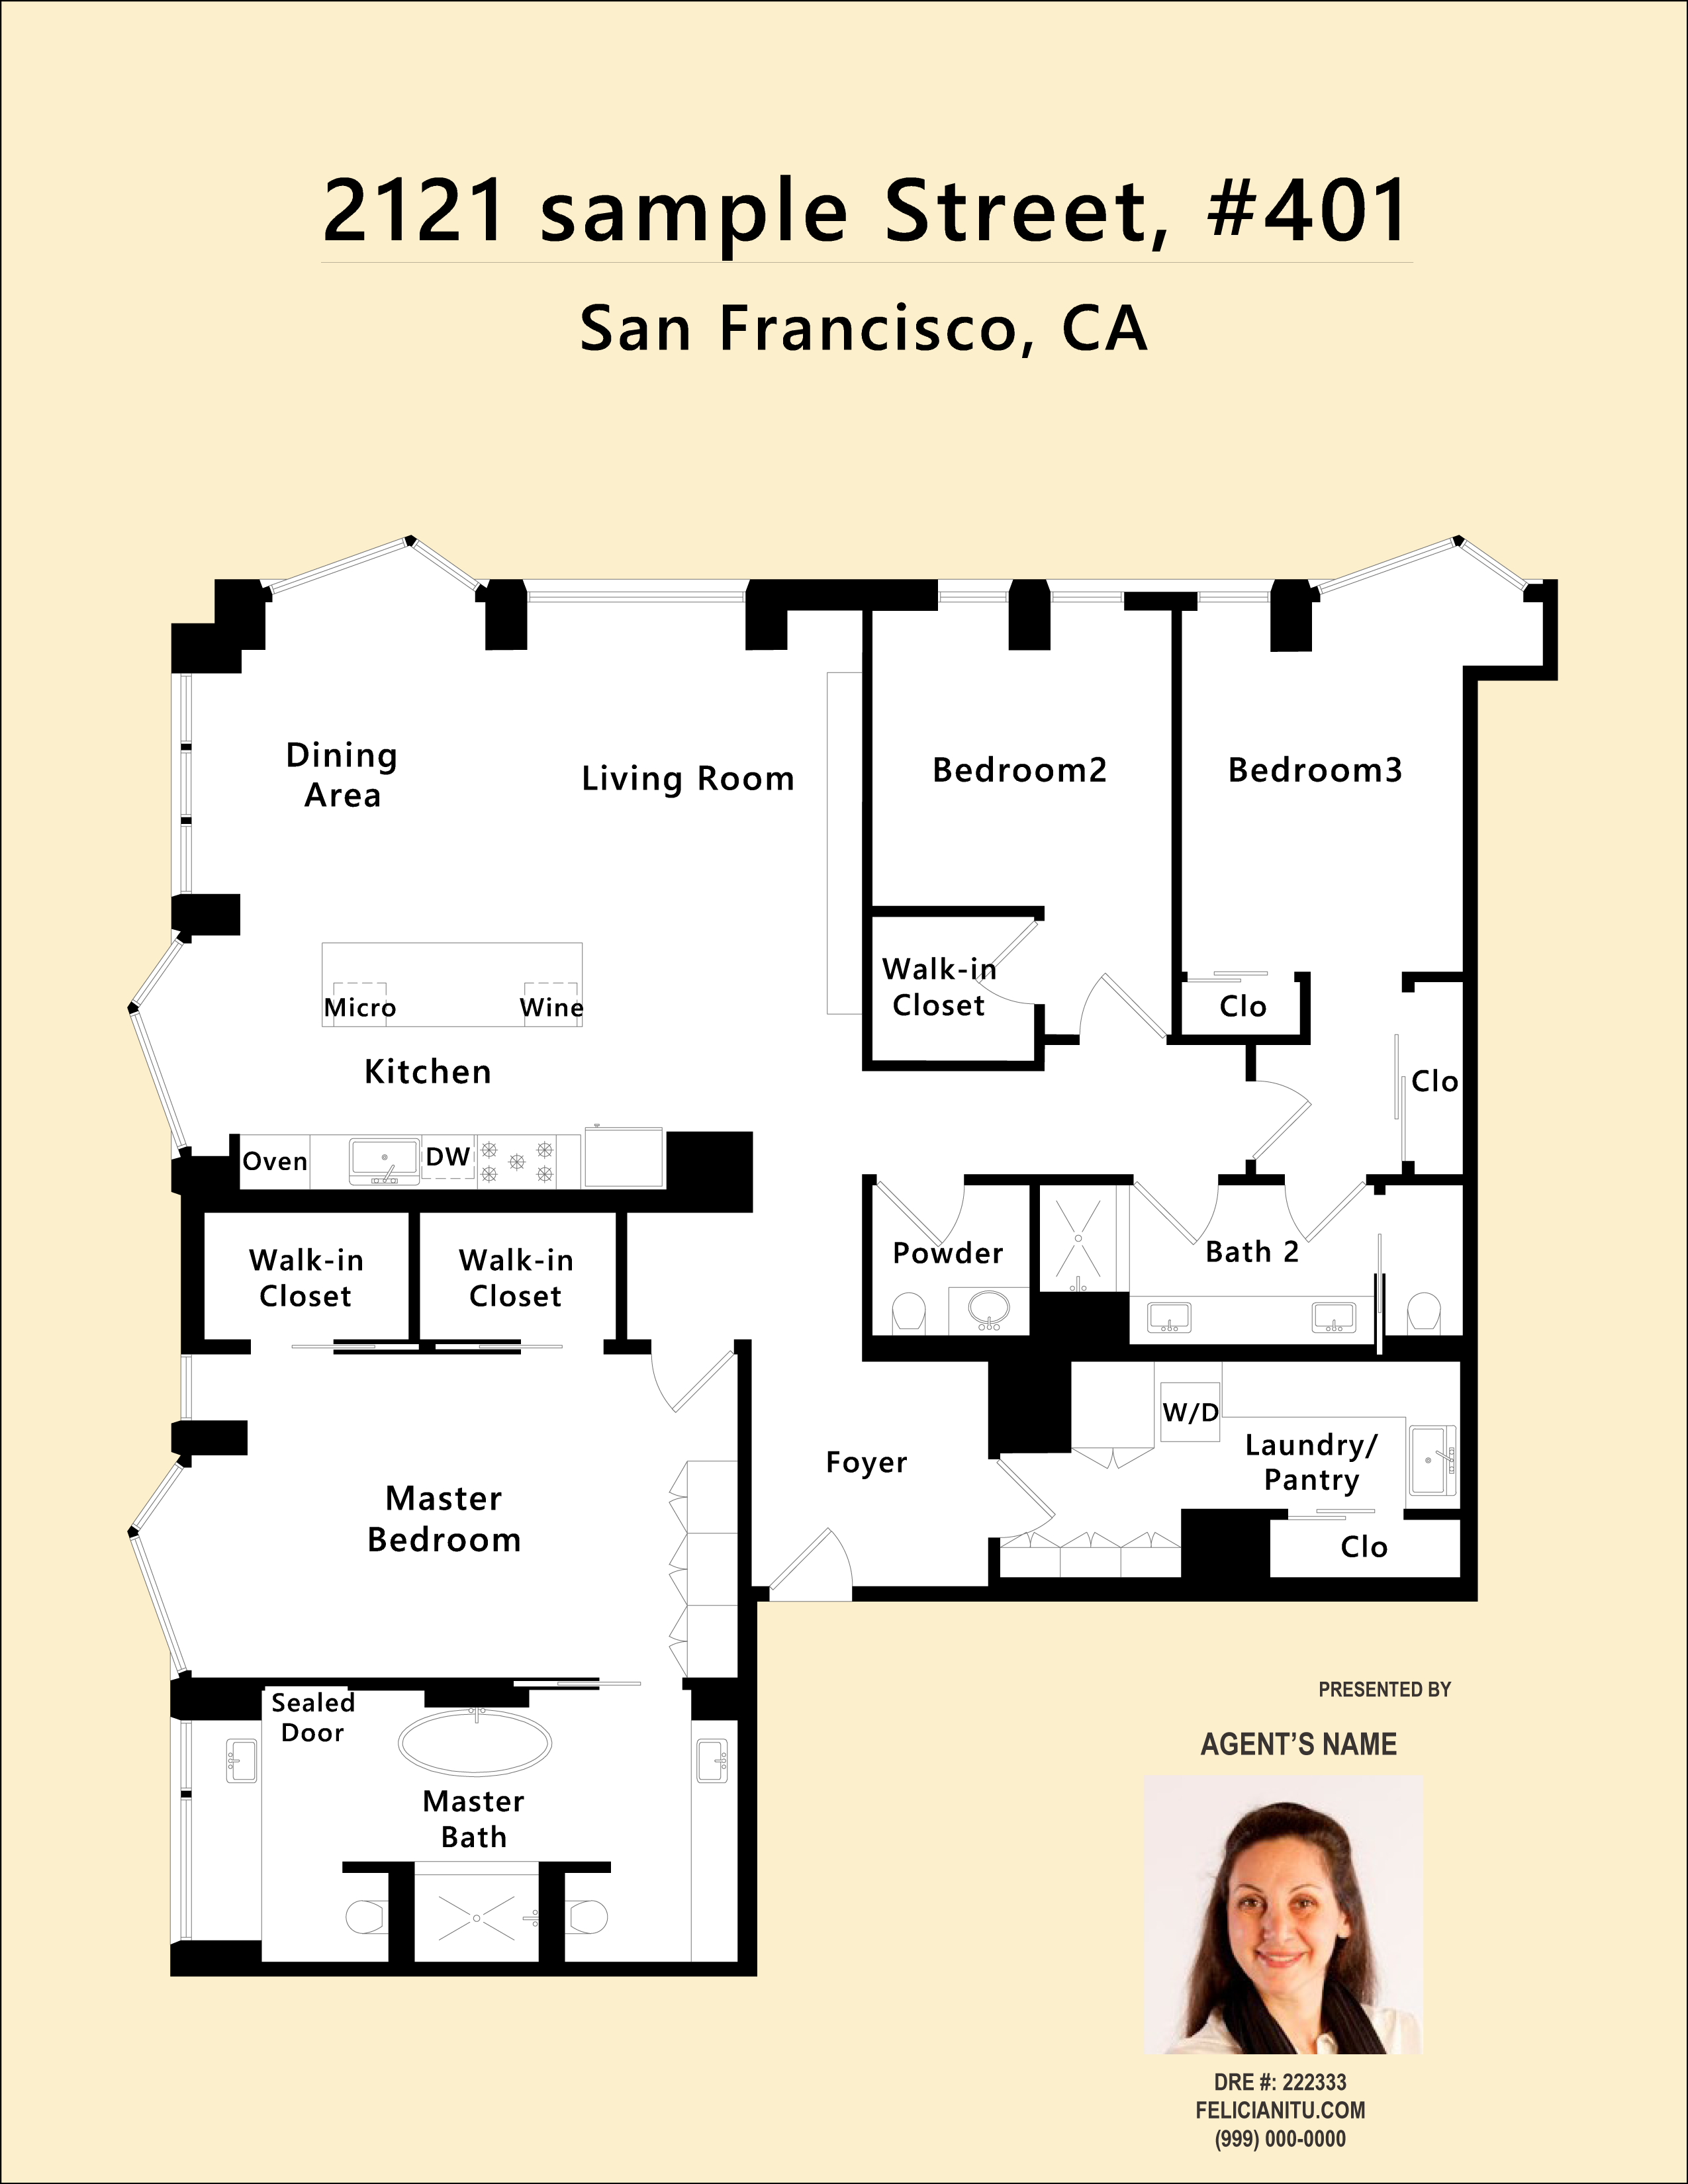 CityStructure floor plans single family and multi family homes in San Francisco and Bay area